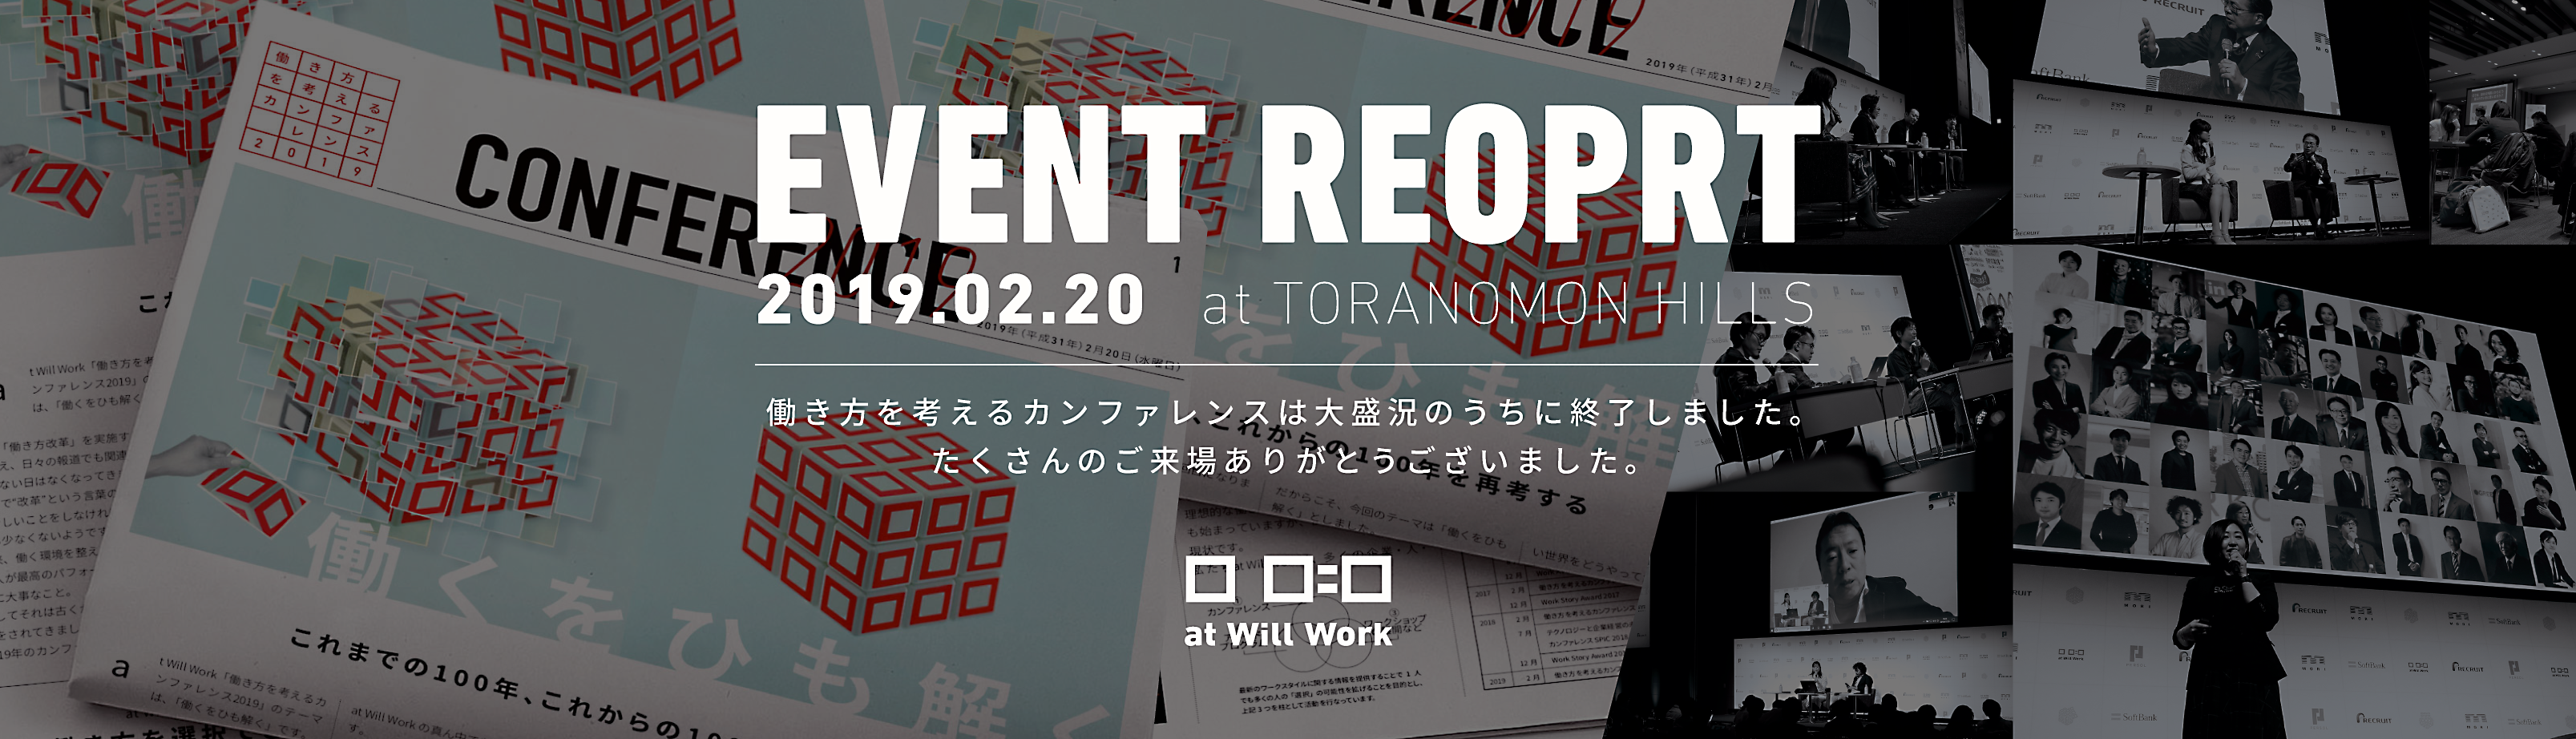 eventreporot_banner.png